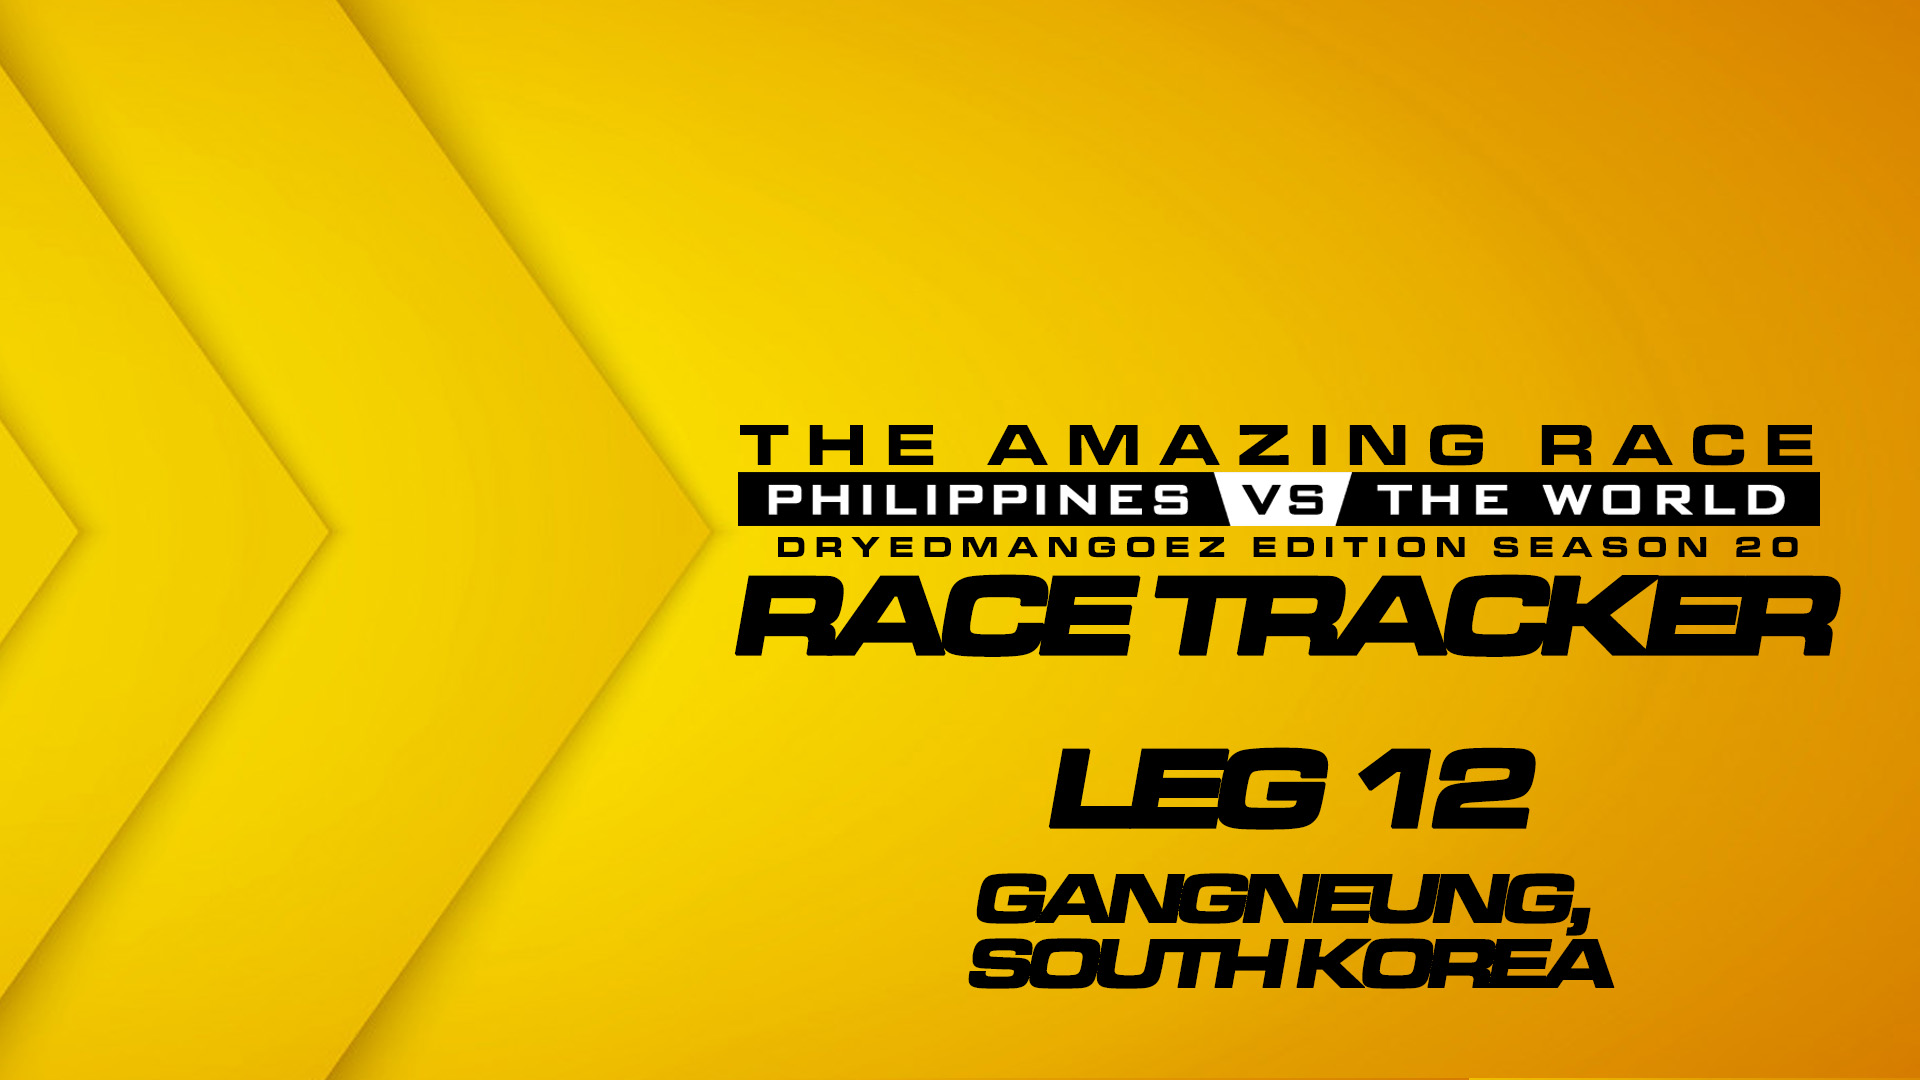 The Amazing Race Philippines vs The World (DryedMangoez Edition Season 20) Race Tracker – Leg 12